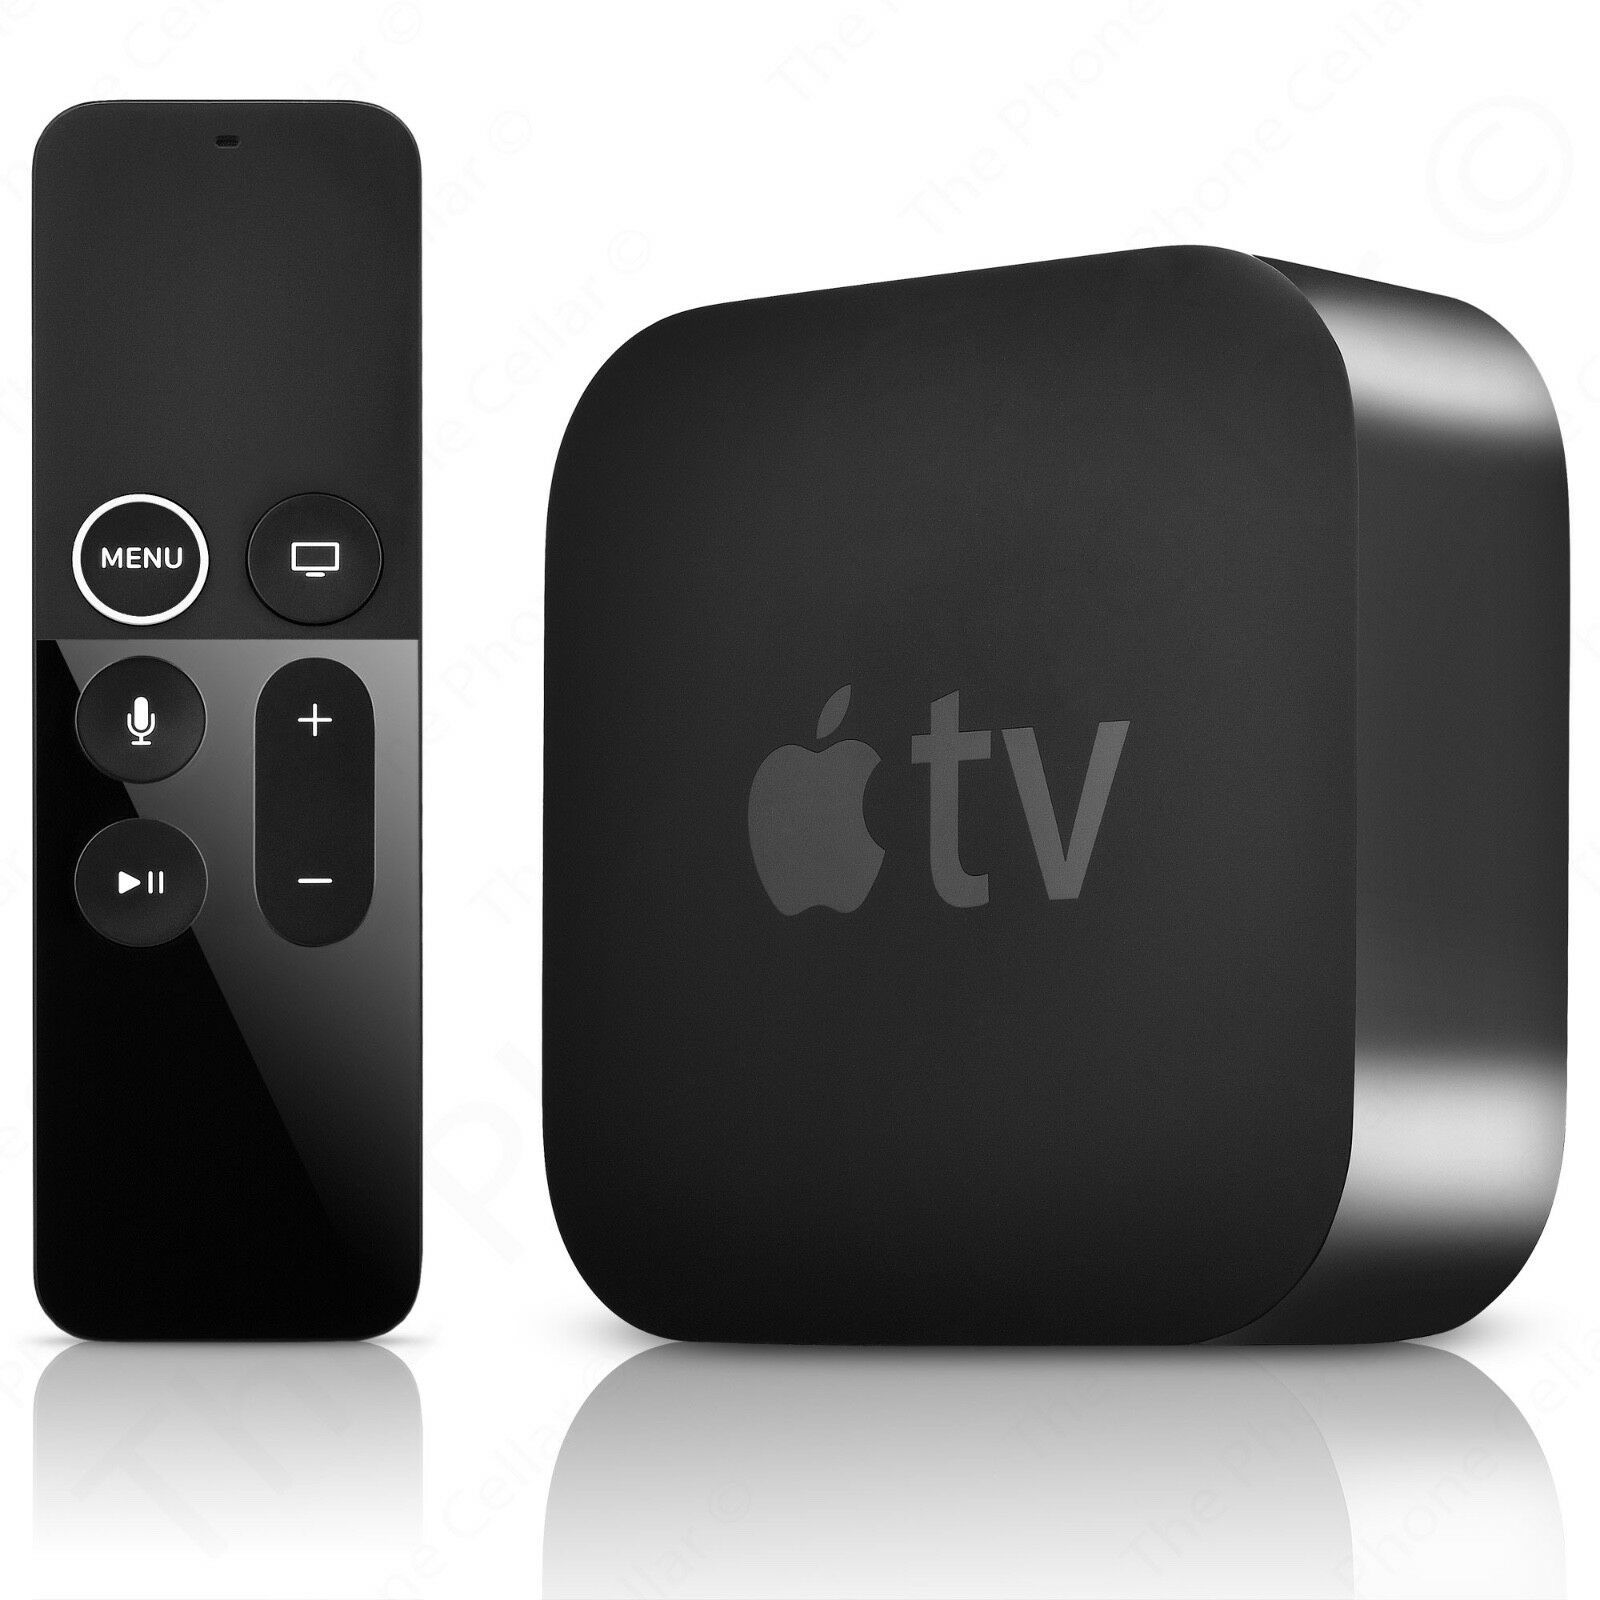 s-l1600 Apple TV 4K HDR 64GB HD Streaming Media Player Netflix Hulu iTunes MP7P2LL/A